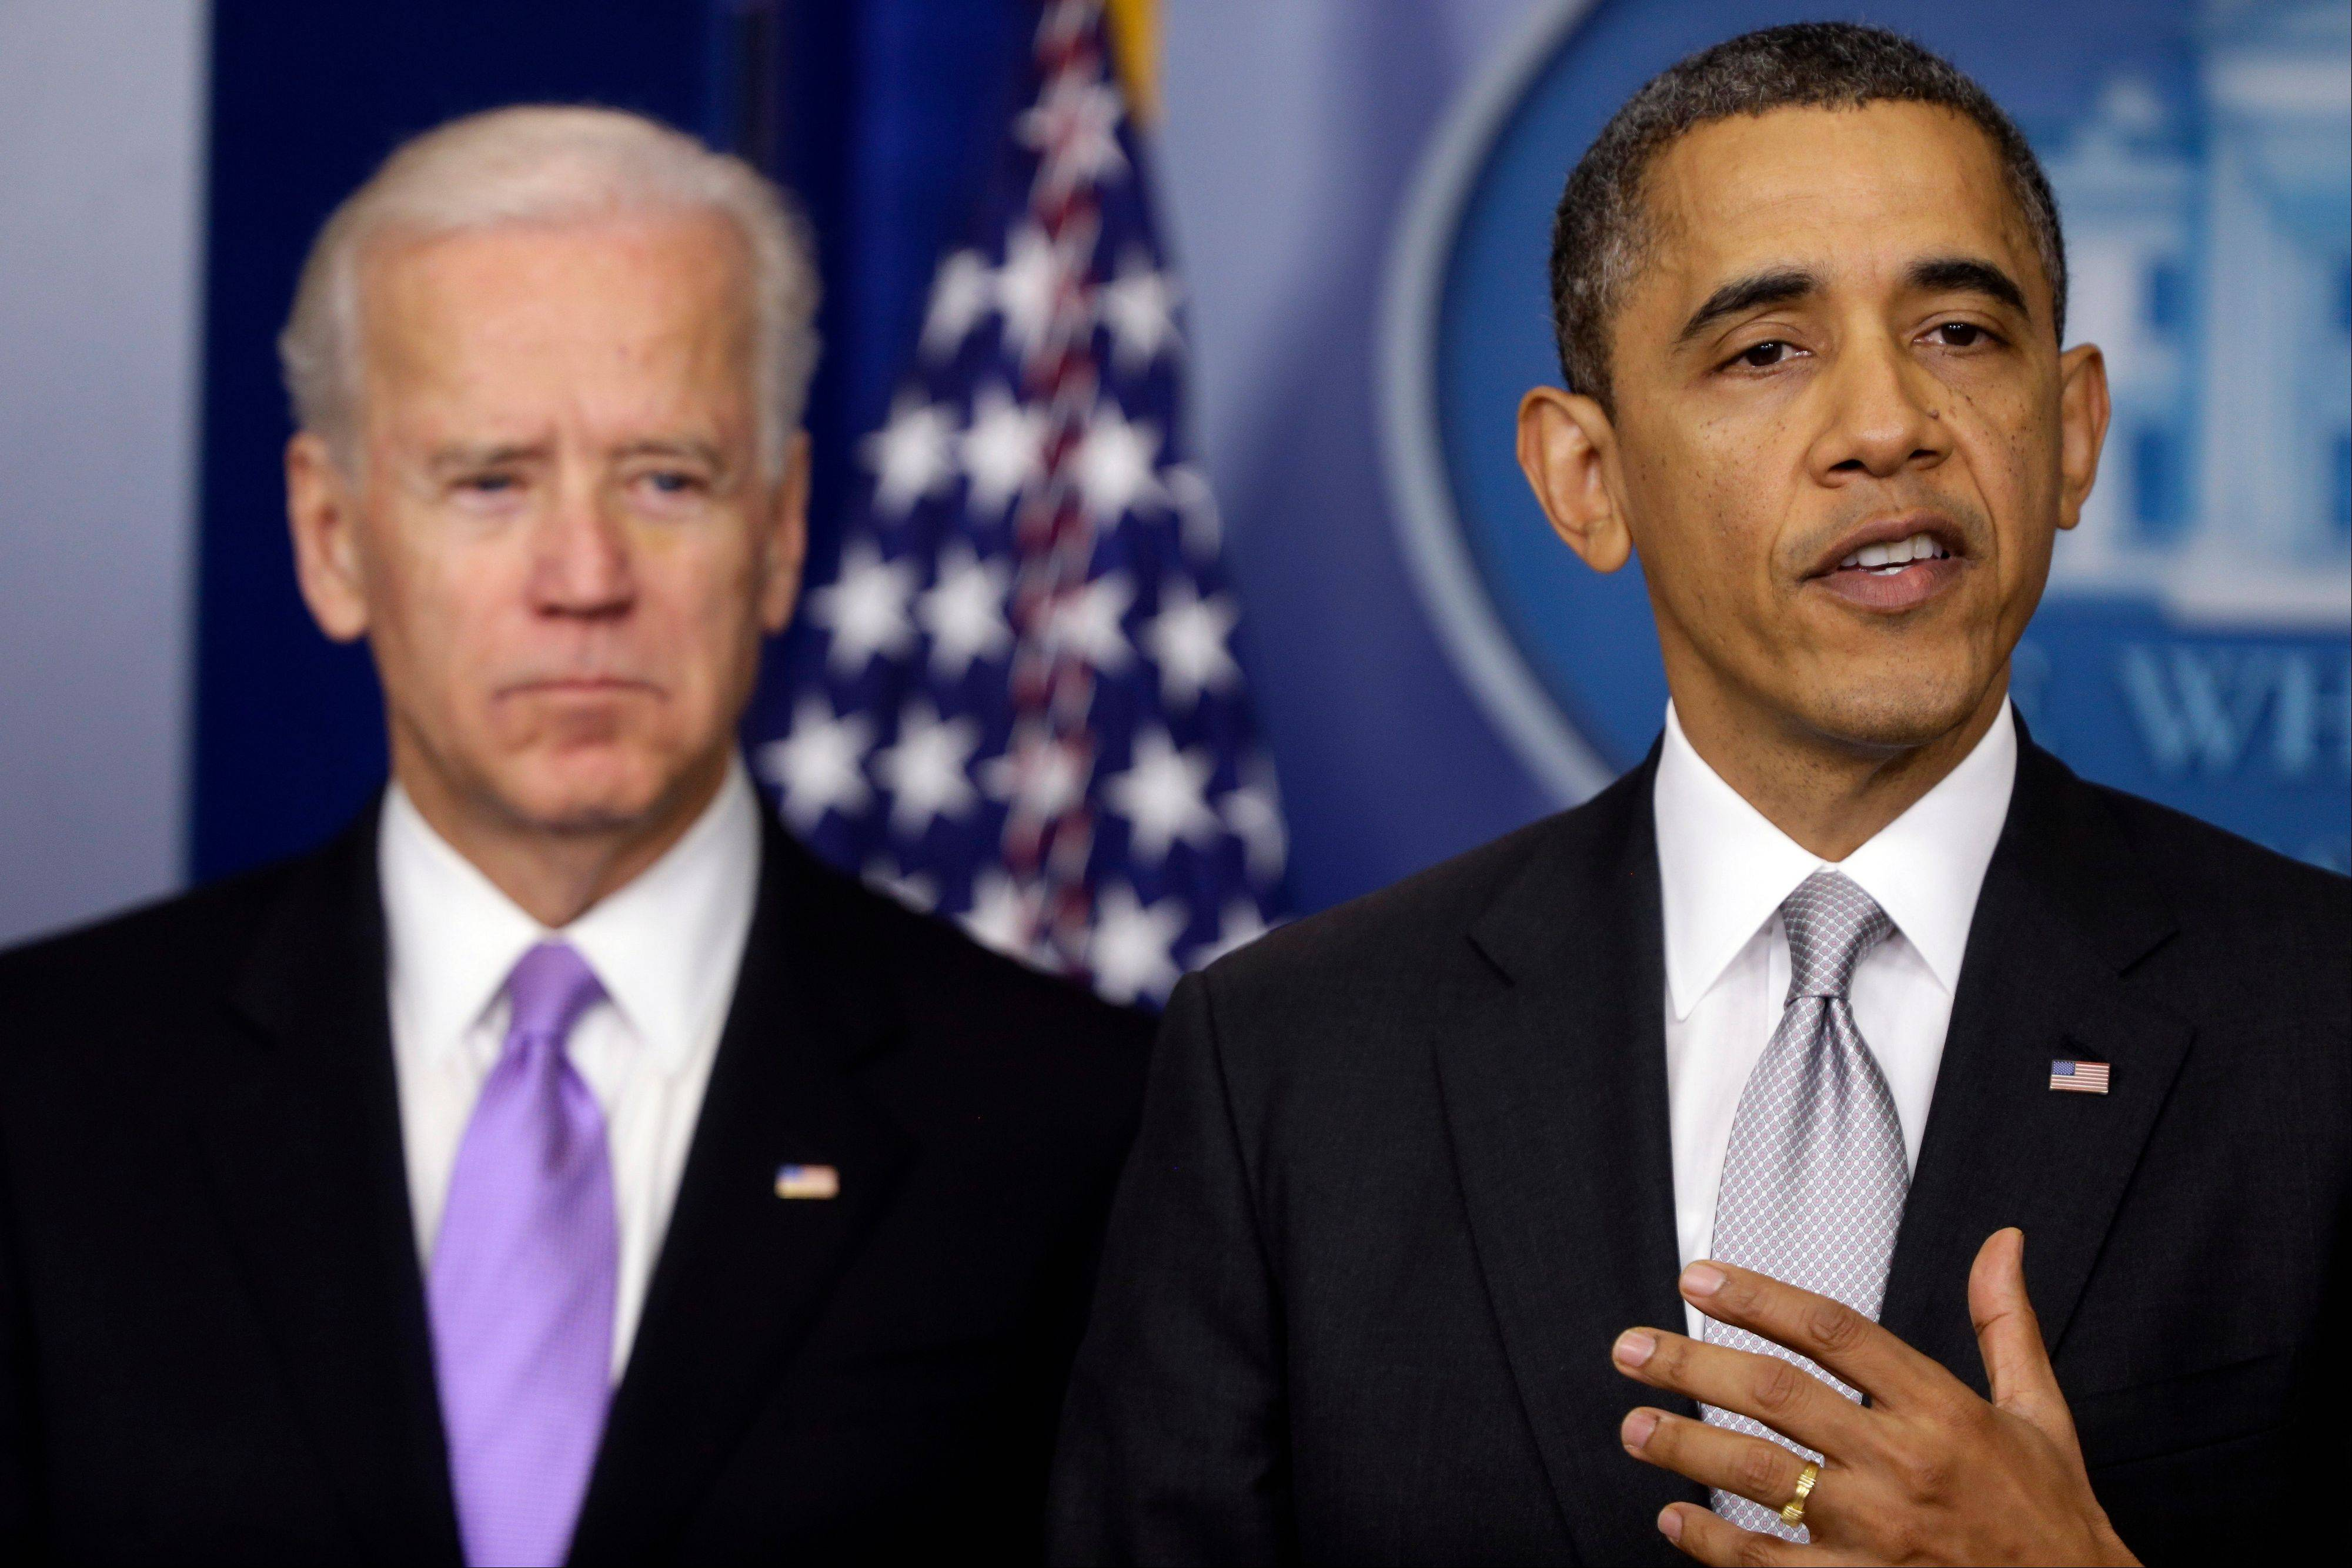 President Barack Obama stands with Vice President Joe Biden as he makes a statement Wednesday, Dec. 19, 2012, in the Brady Press Briefing Room at the White House in Washington, about policies he will pursue following the massacre at Sandy Hook Elementary School in Newtown, Ct. Obama is tasking Vice President Joe Biden, a longtime gun control advocate, with spearheading the effort.